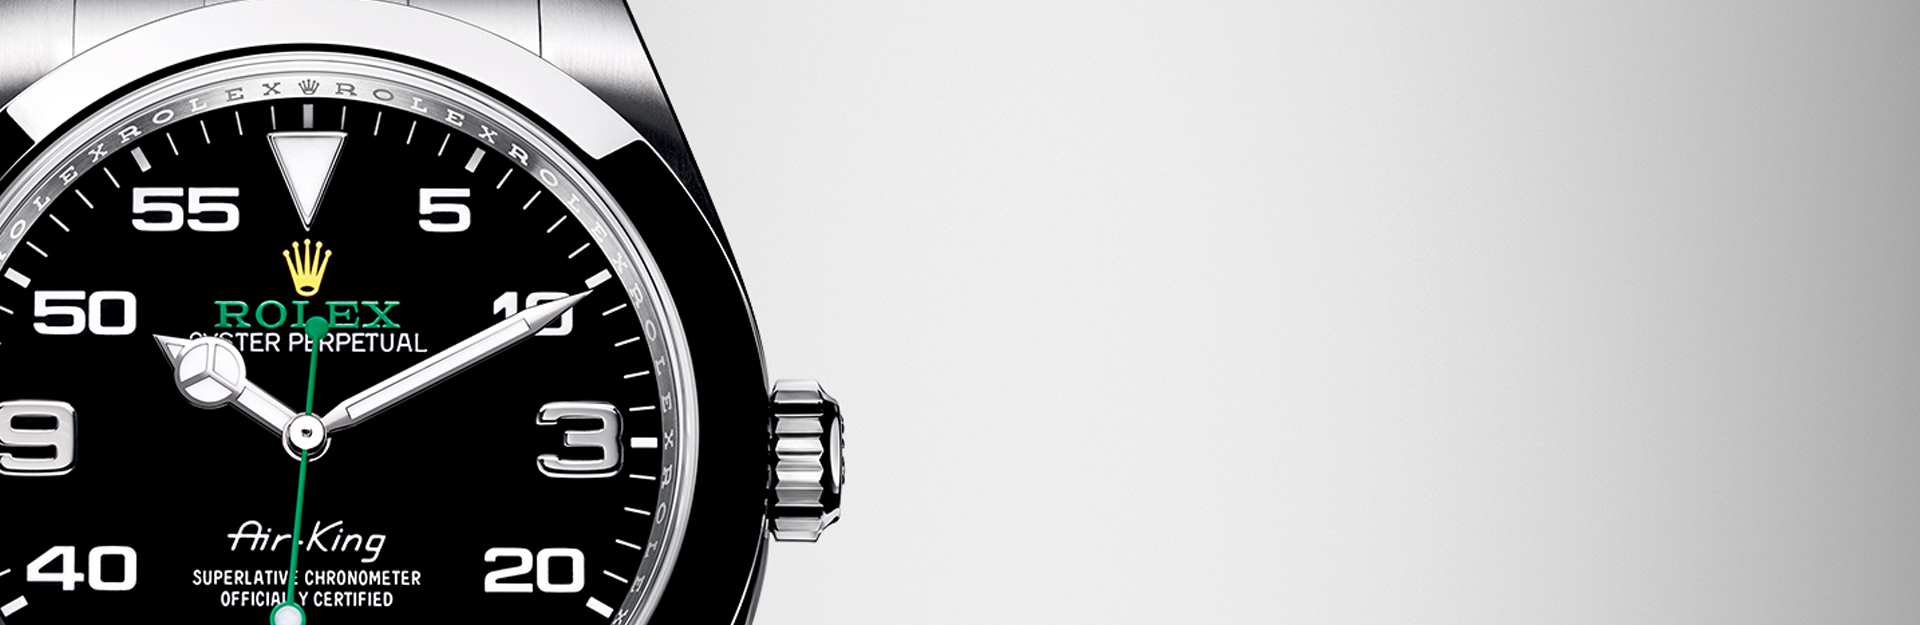 watch-header